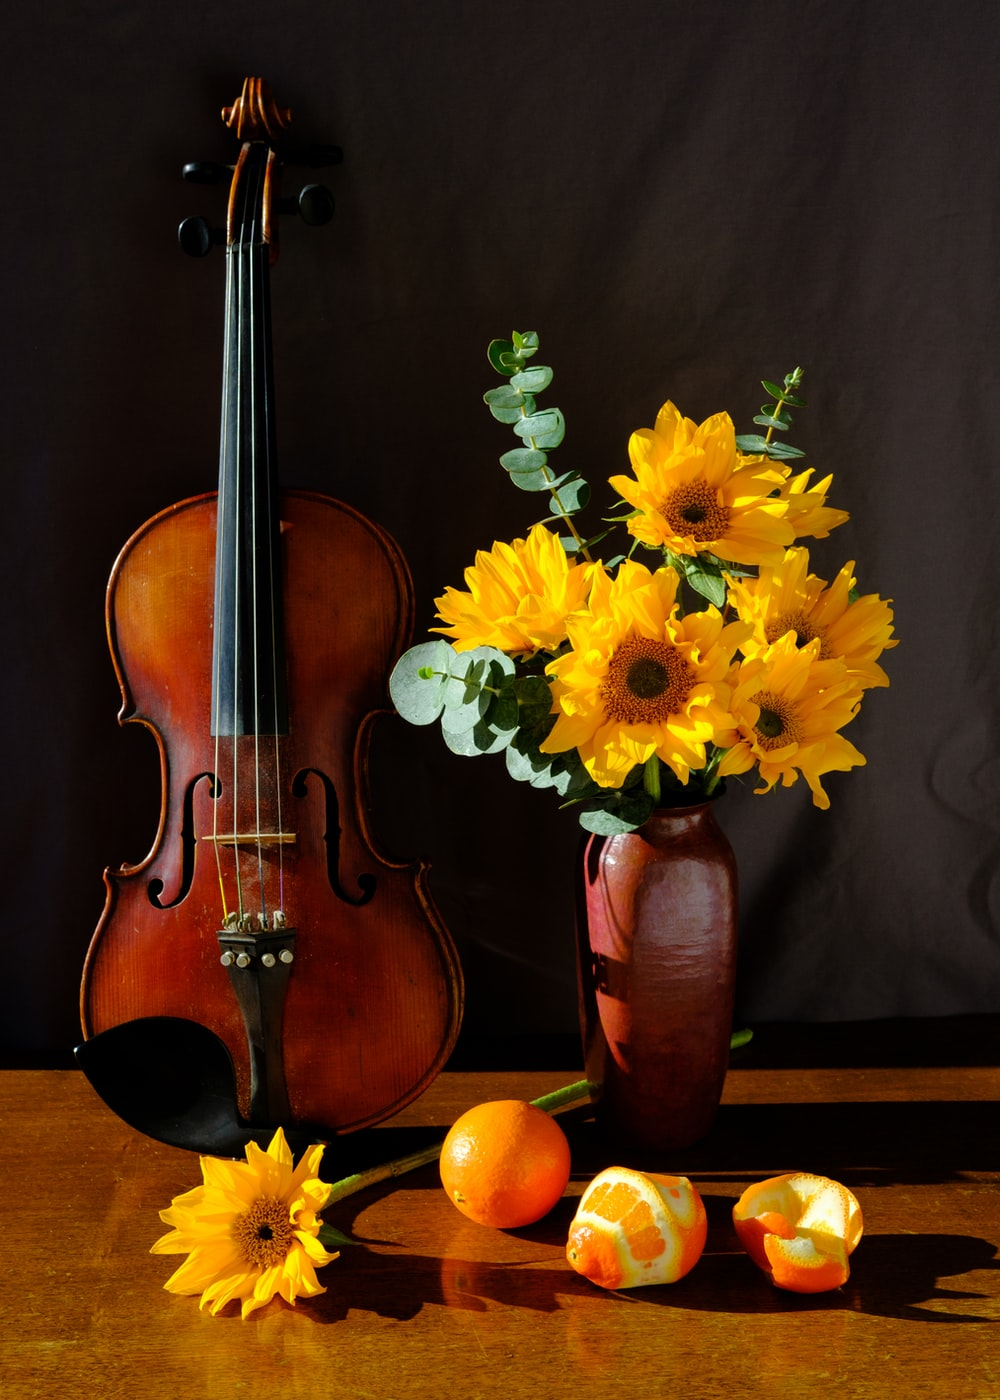 yellow and green flowers on brown violin